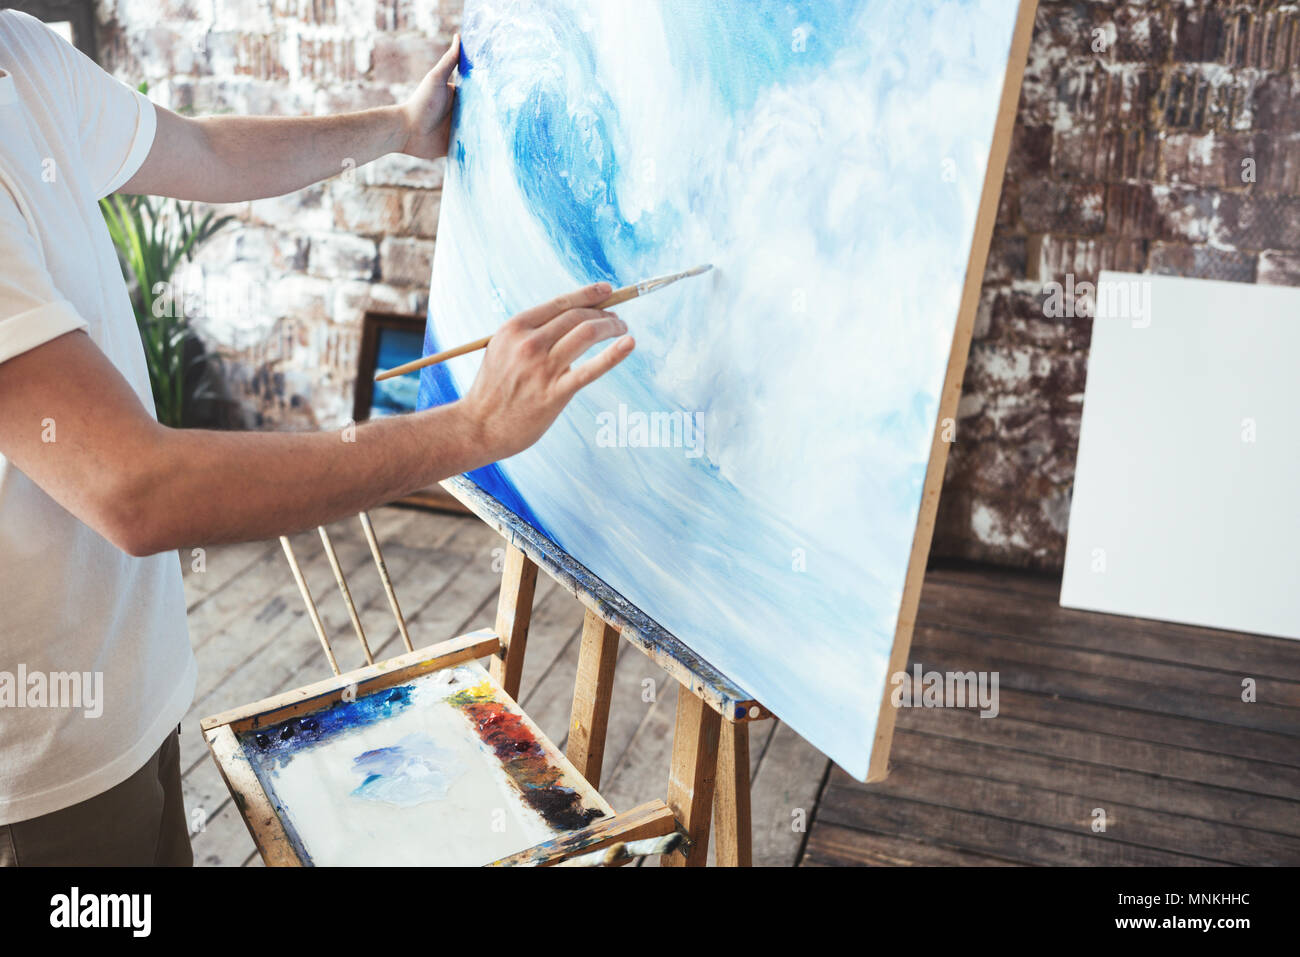 Process of drawing with oilpaints and paintbrush. Artist paints on canvas painting on easel in studio. Hobby - Stock Image